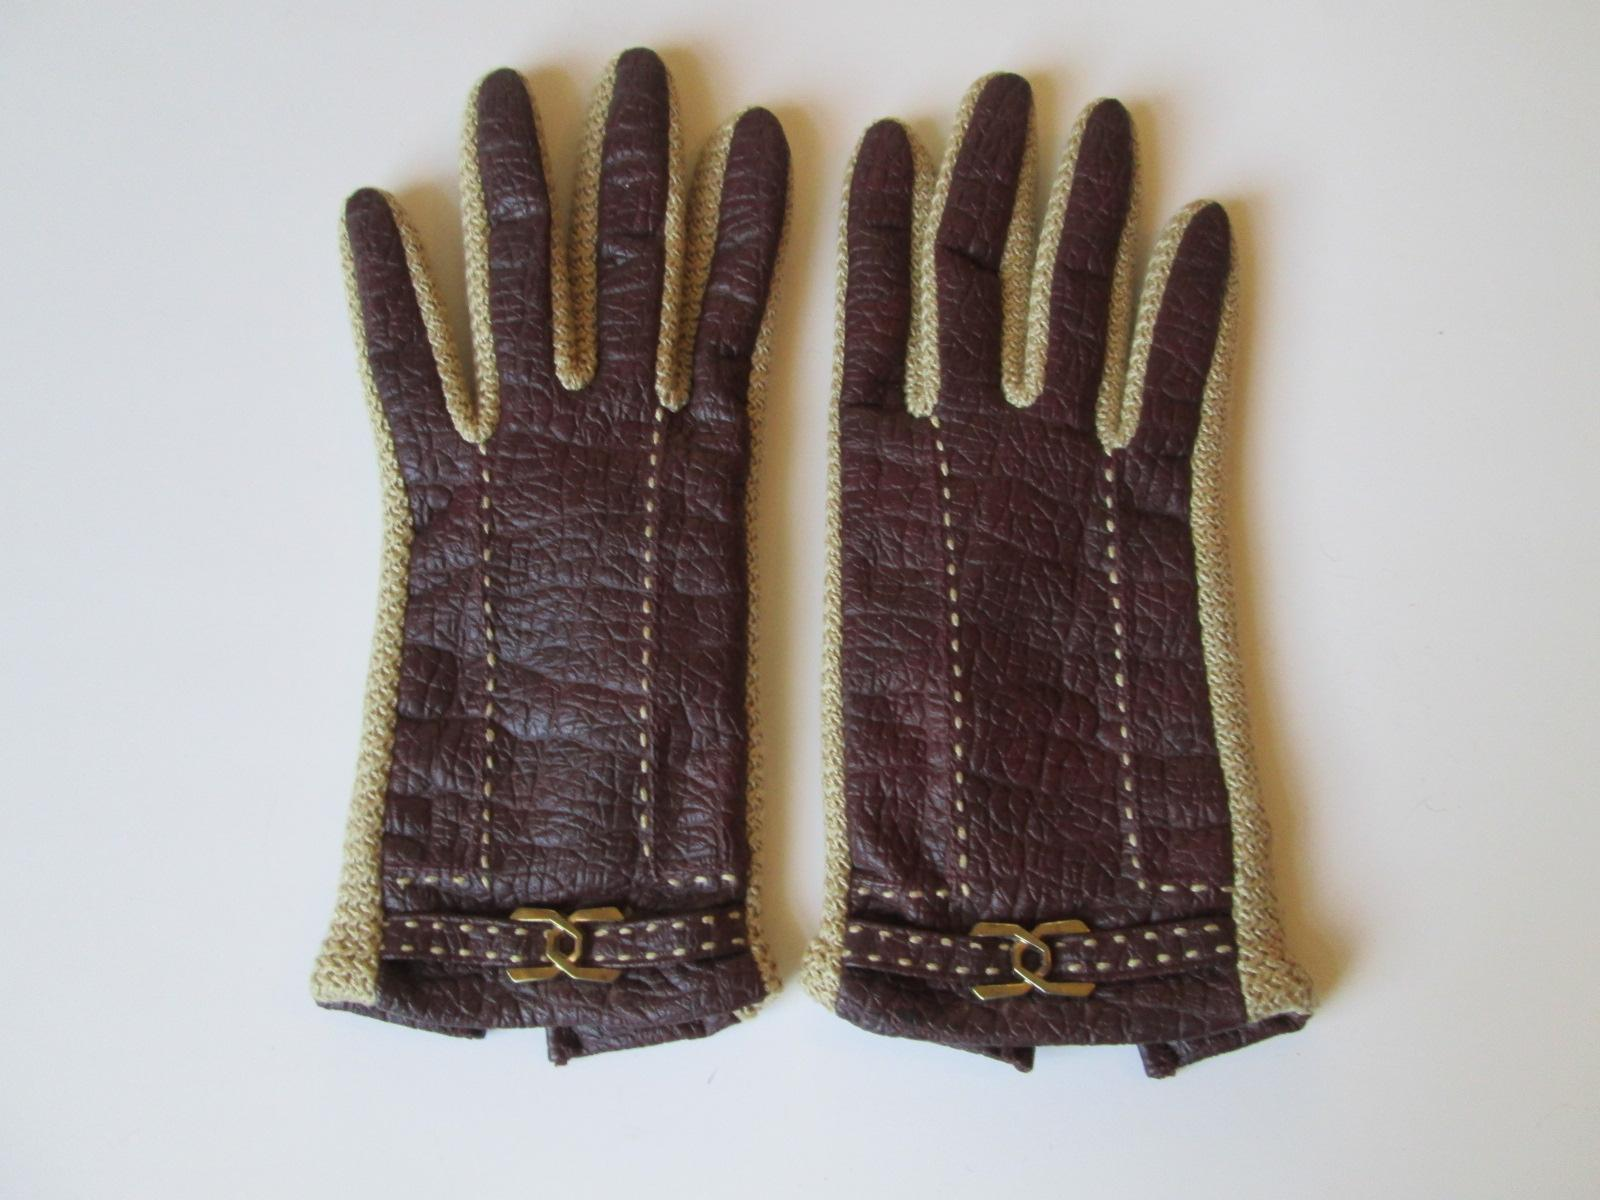 Kid leather driving gloves - Roll Over Large Image To Magnify Click Large Image To Zoom